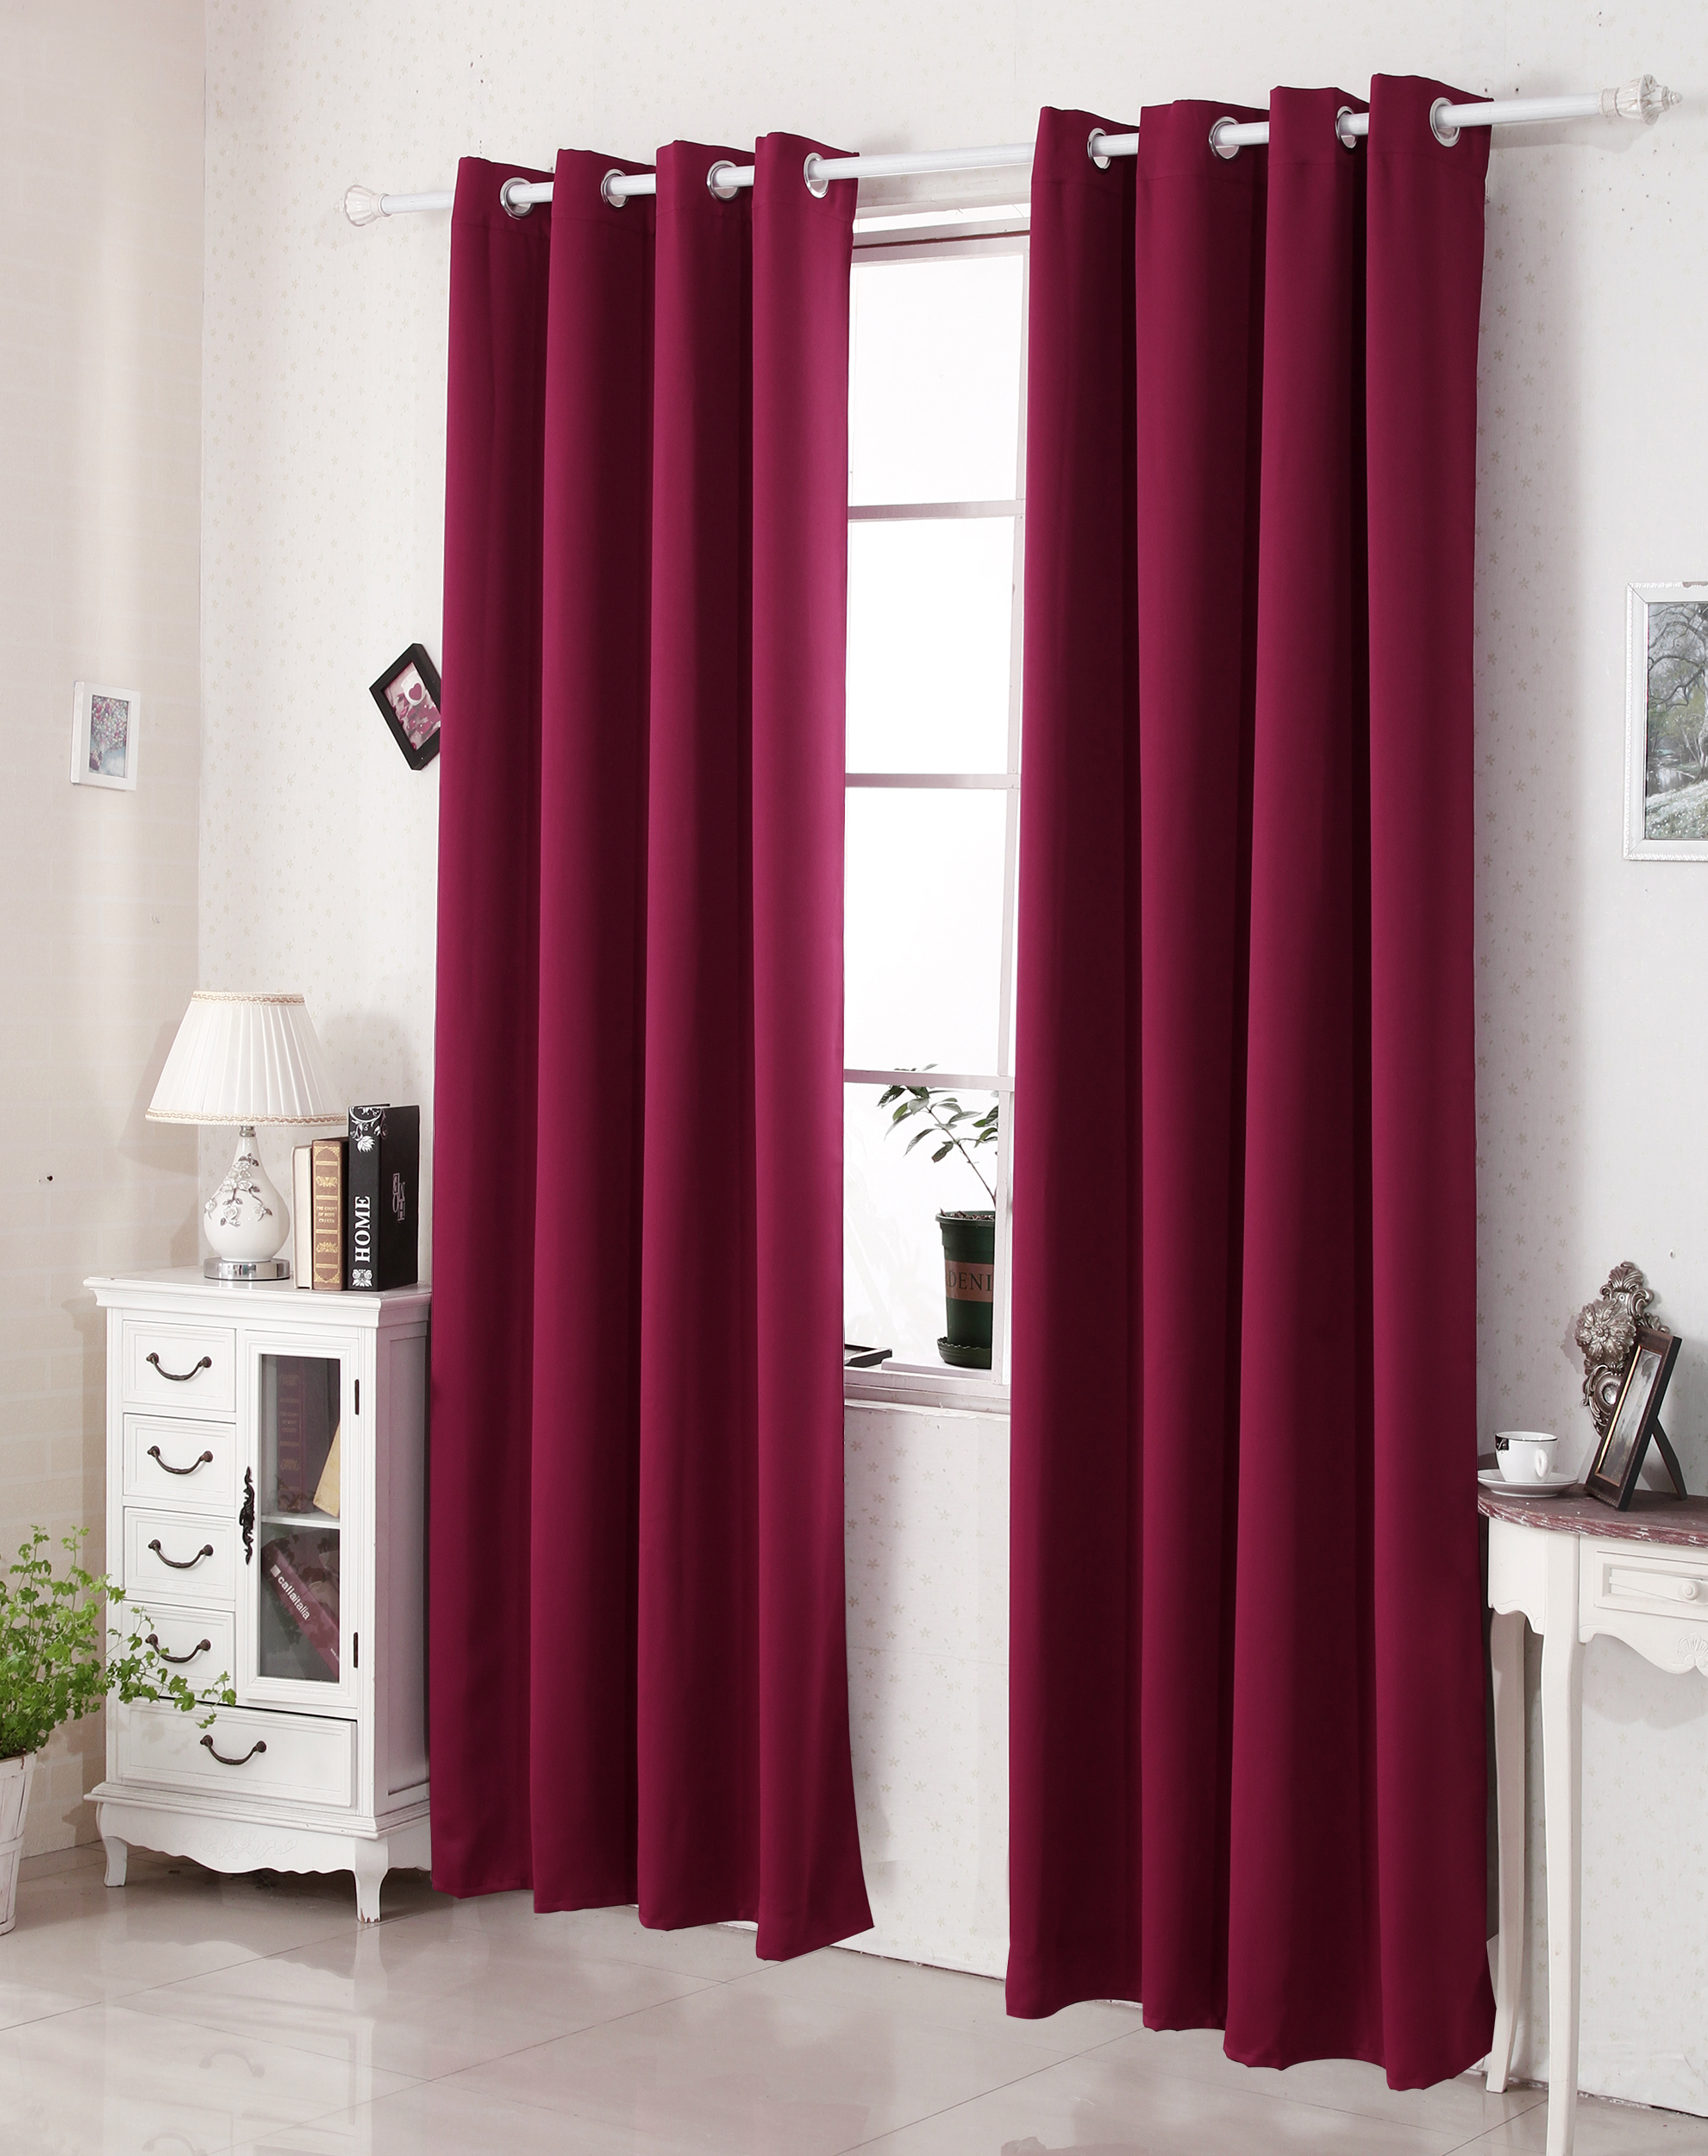 1 rideau opaque occultant oeillets rideau thermique isolant f084 ebay. Black Bedroom Furniture Sets. Home Design Ideas